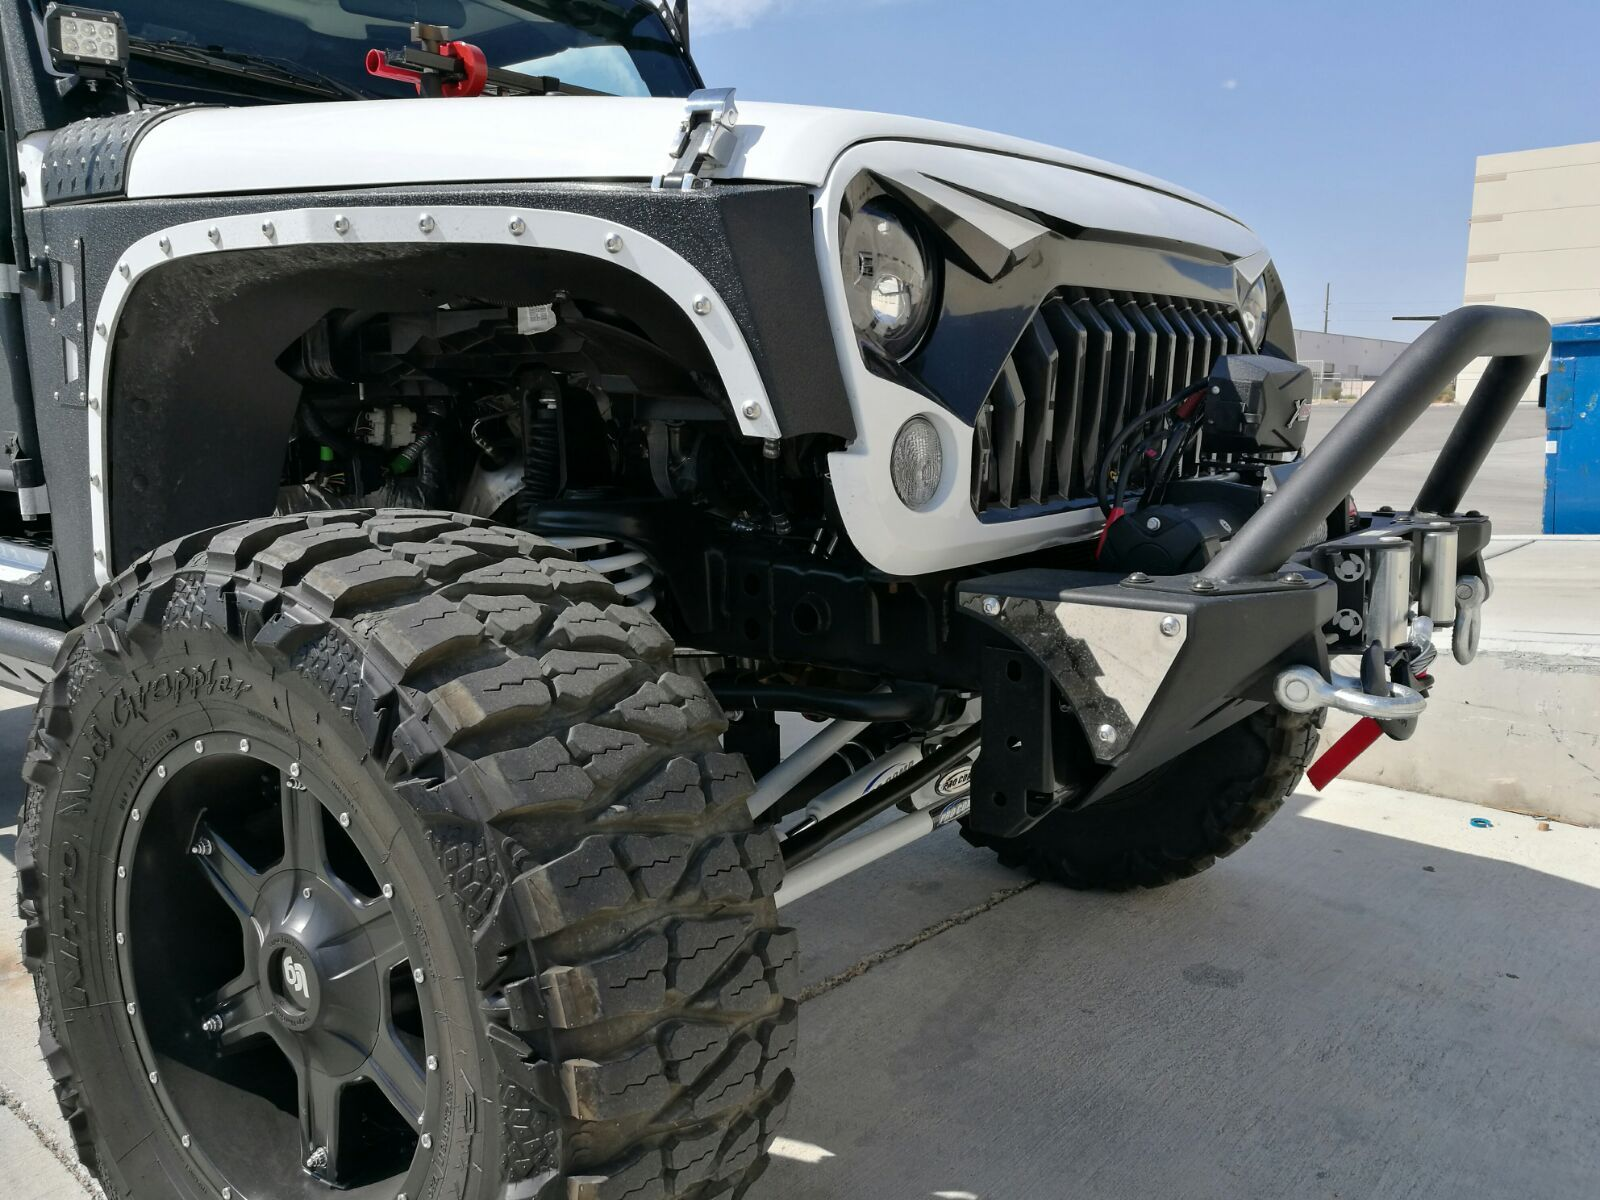 This Decked Out Jk Has It All Including The Gladiator Grille Check